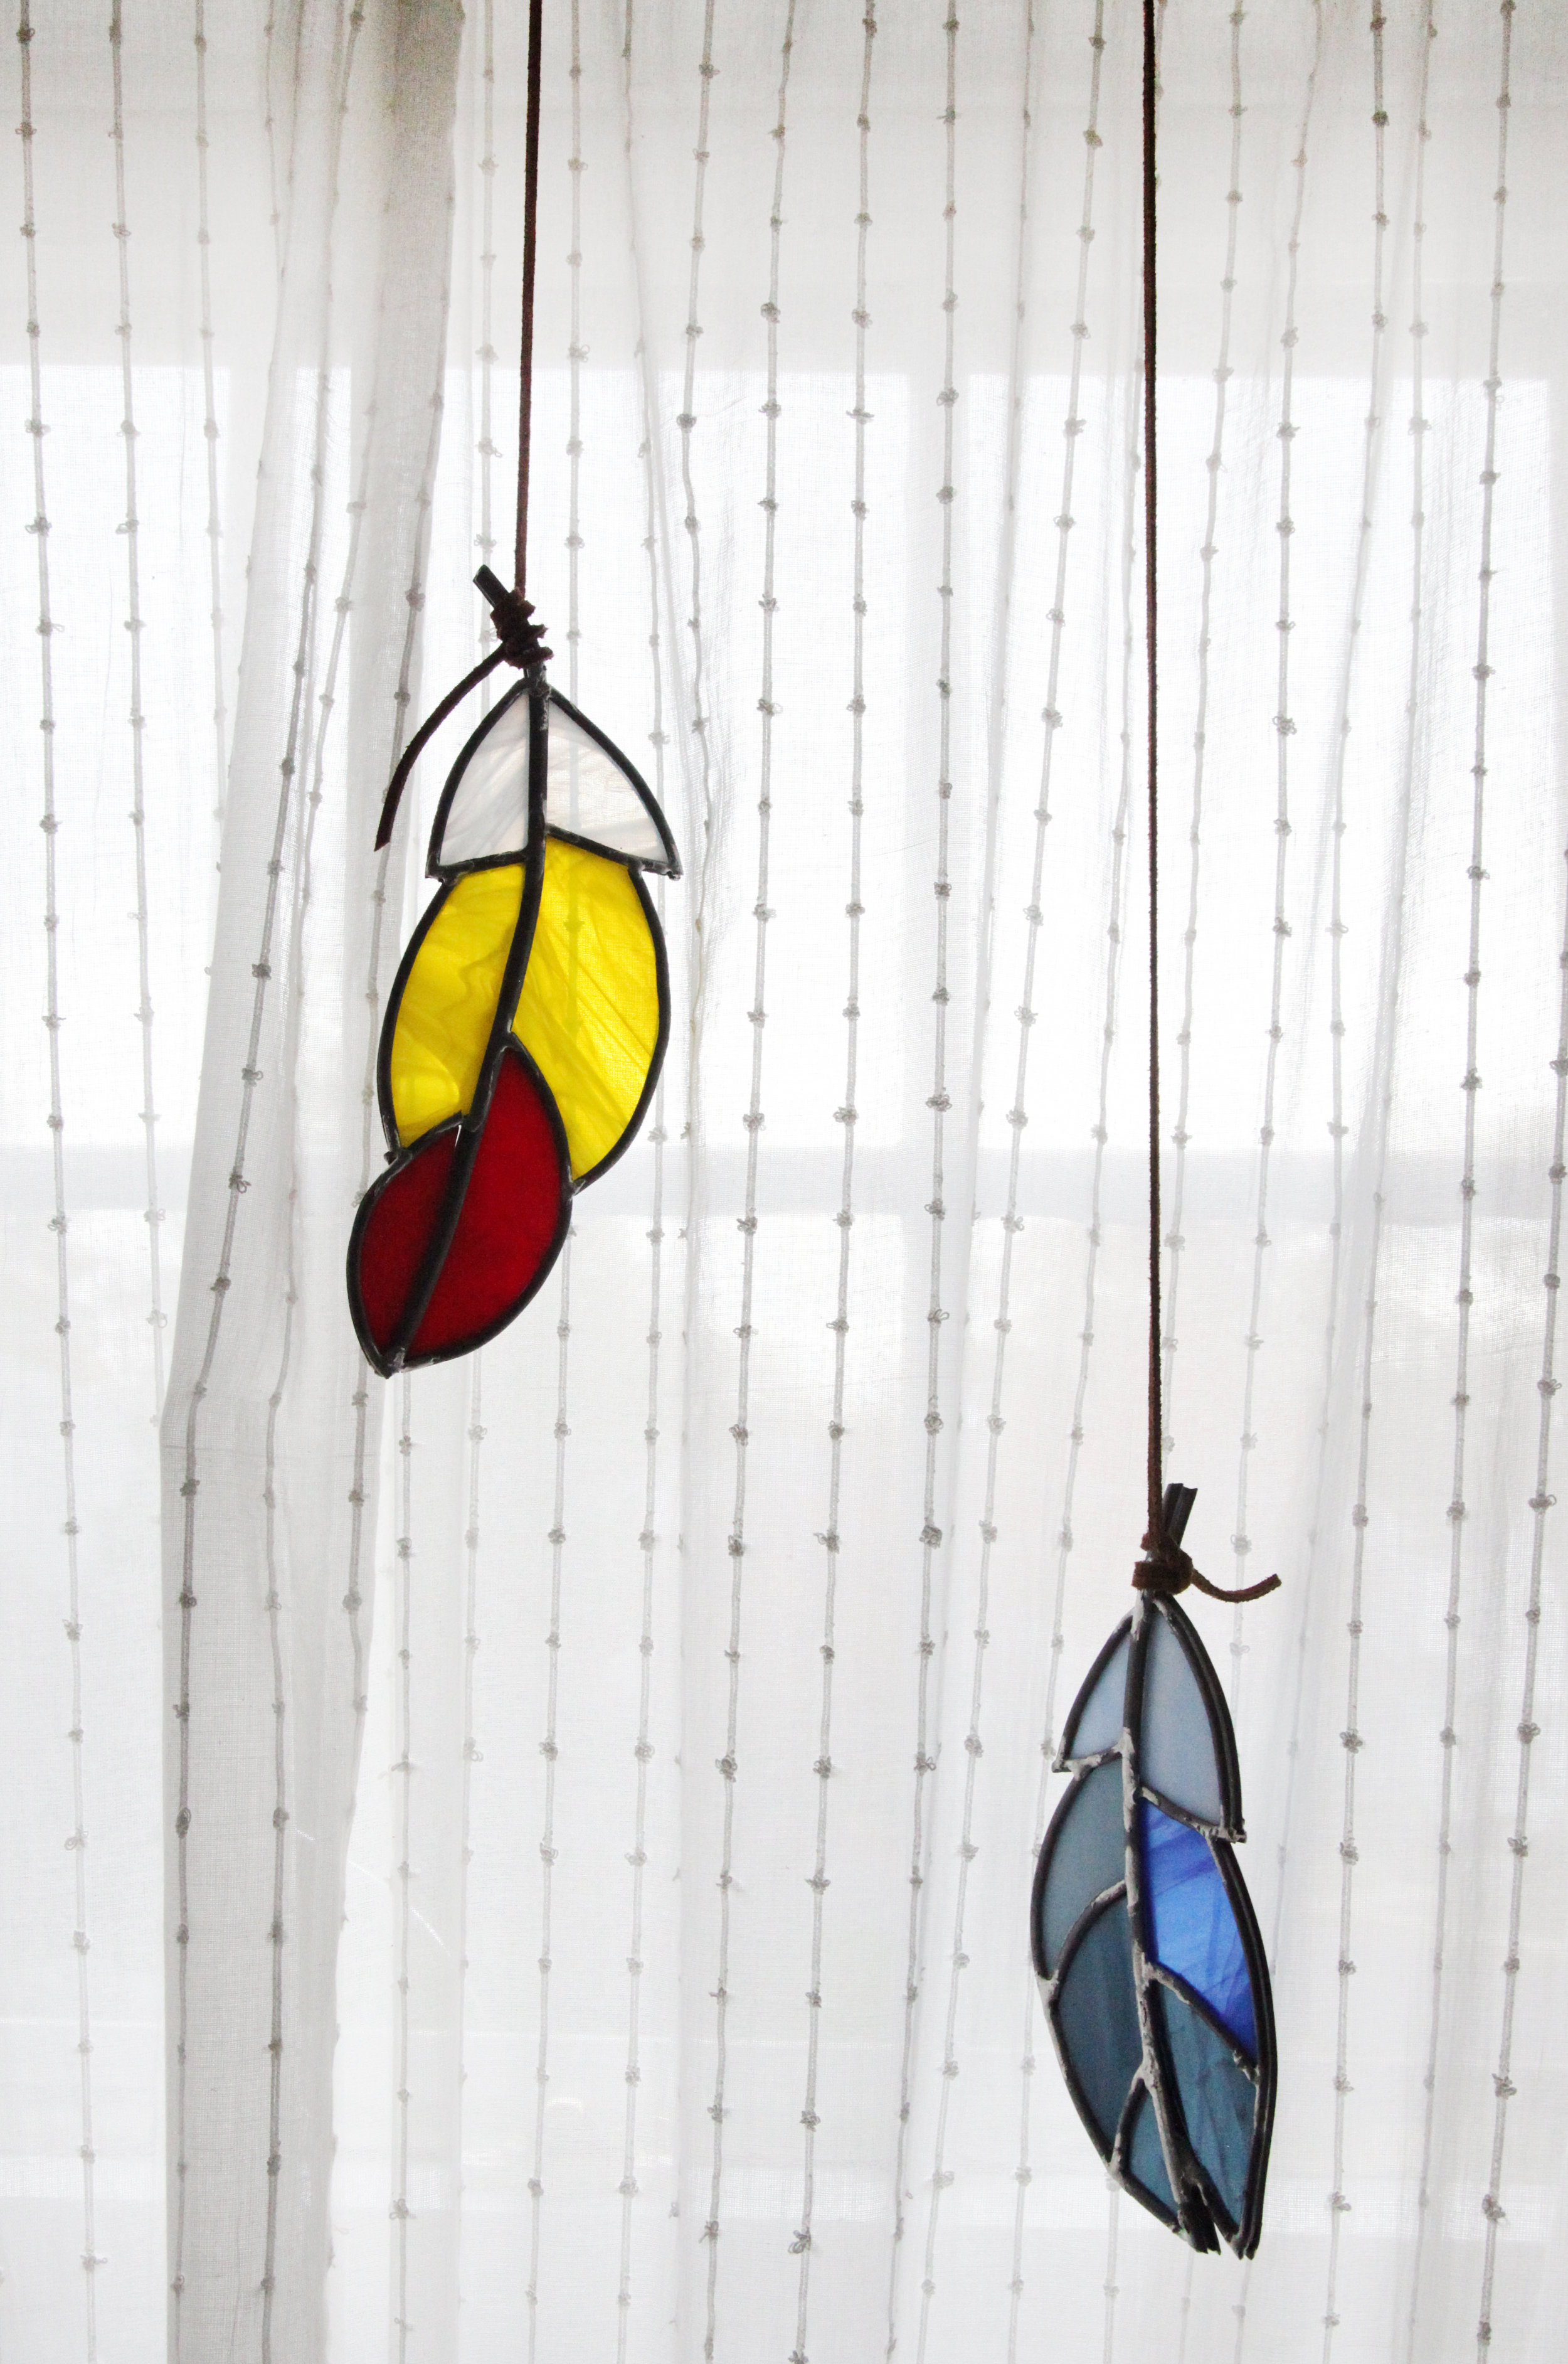 I've been making stained glass windows since I was in high school- I have a glass grinder and all the works!